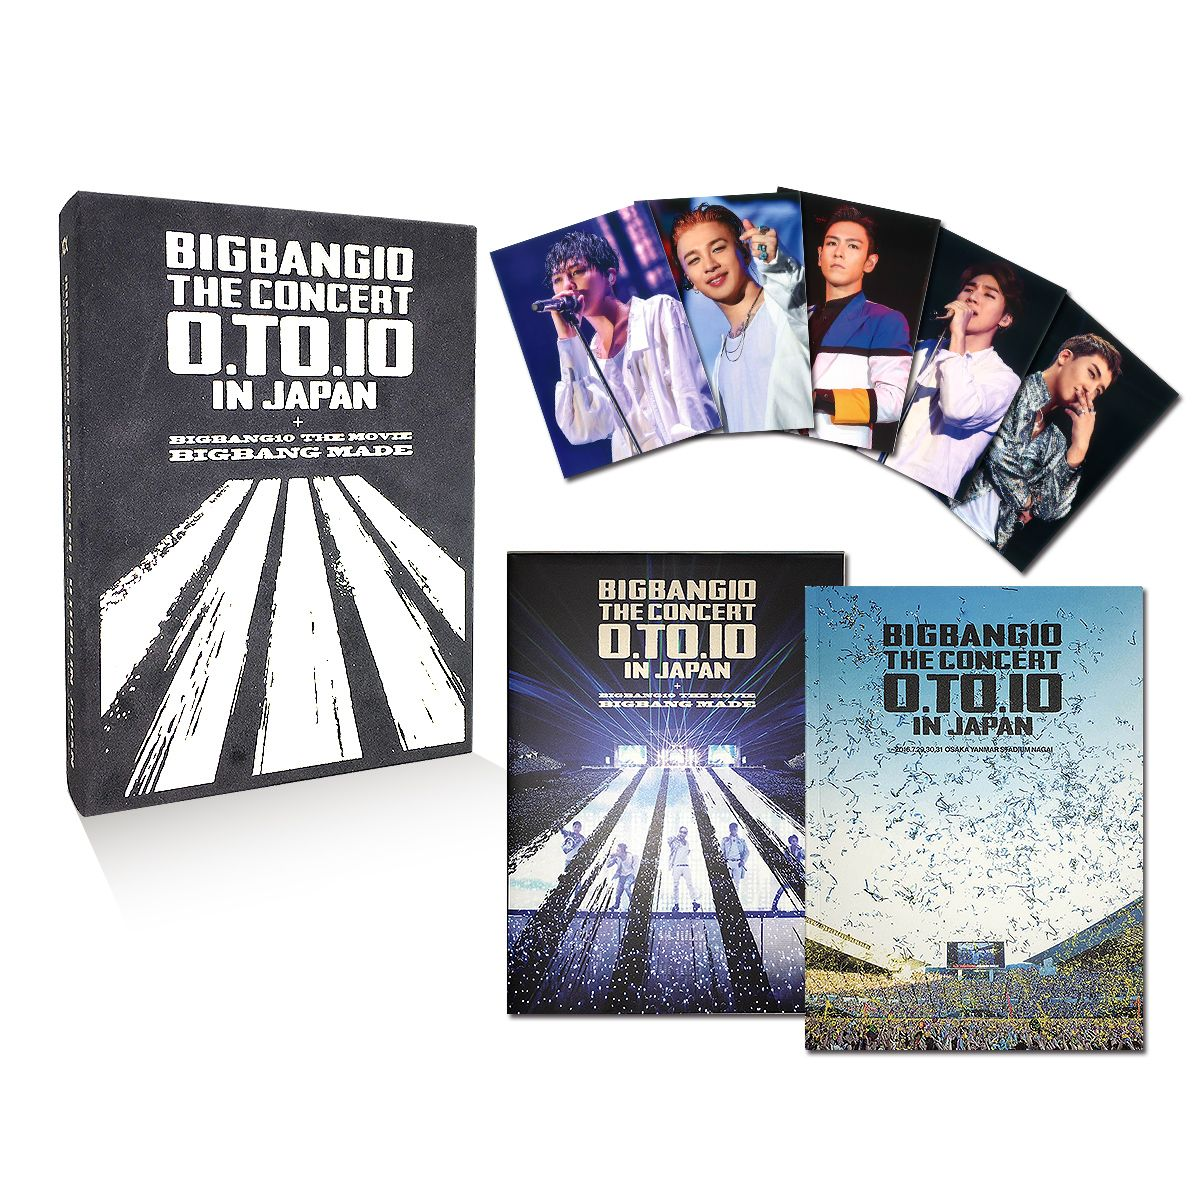 BIGBANG10 THE CONCERT : 0.TO.10 IN JAPAN + BIGBANG10 THE MOVIE BIGBANG MADE[Blu-ray(3枚組)+LIVE CD(2枚組)+PHOTO BOOK+スマプラムービー&ミュージック] -DELUXE EDITION-(初回生産限定)画像